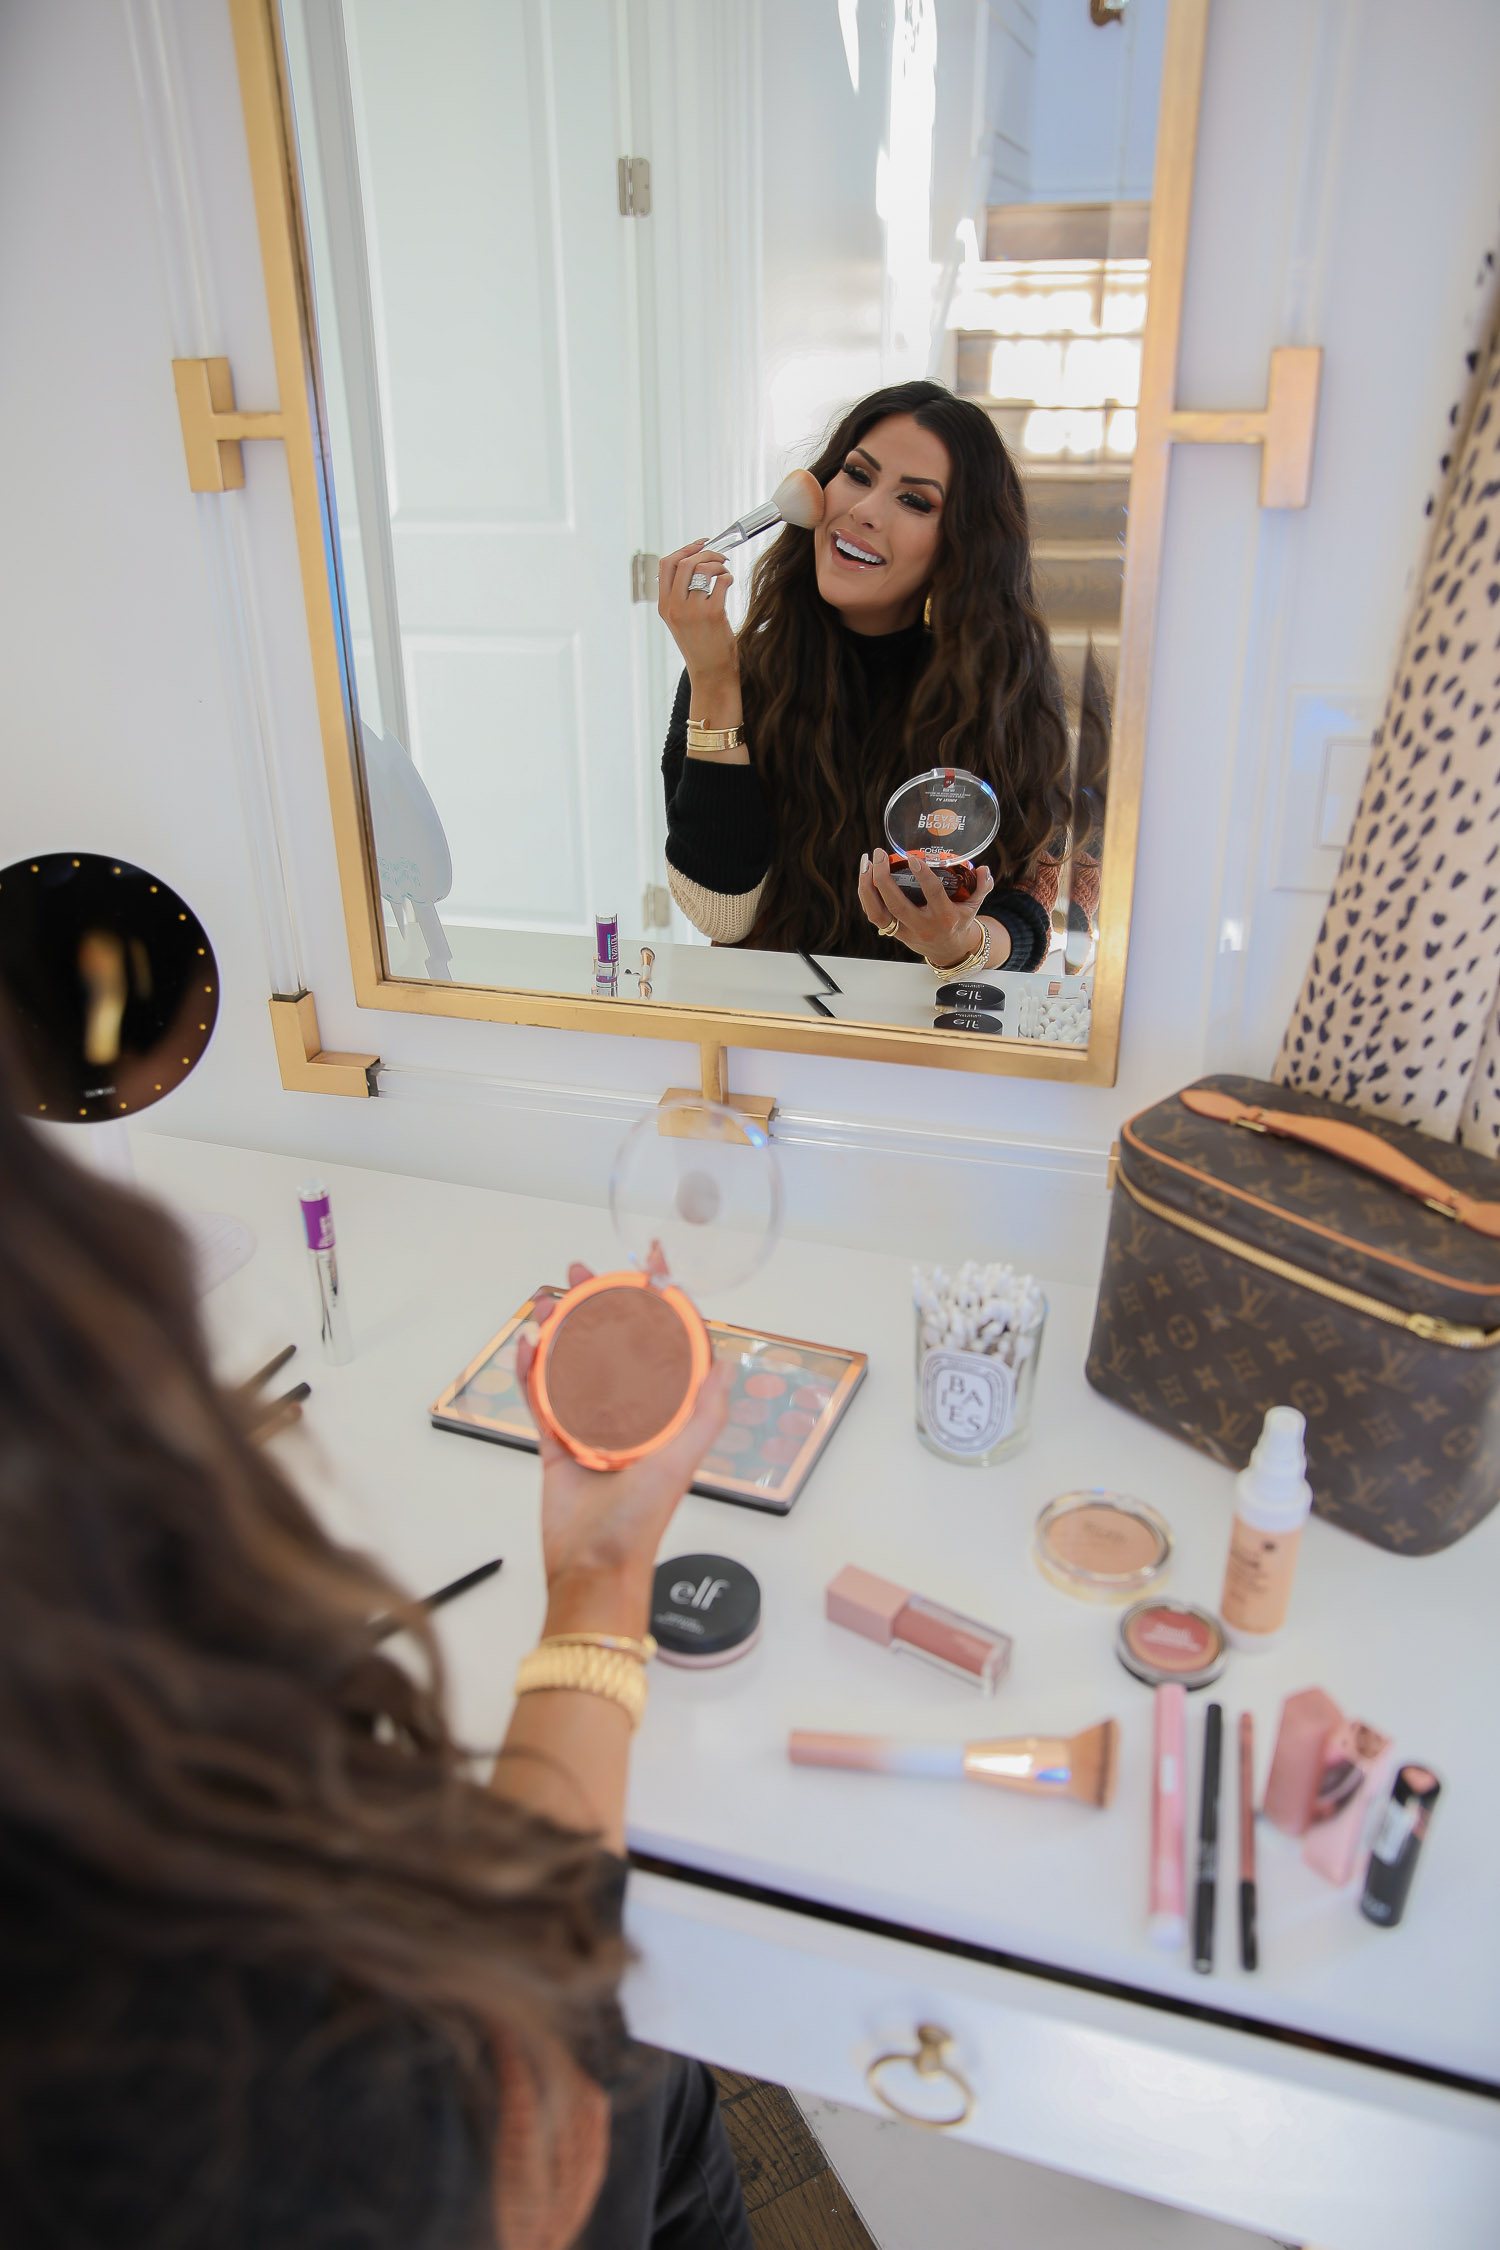 walmart beauty blog post, best drugstore makeup fall 2020, leopard print qtips, Mirage revolution palette review, best drugstore makeup brushes |November Instagram Recap by popular US lifestyle blog, The Sweetest Thing: image of Emily Gemma wearing a Red Dress black and tan stripe sweater and looking at herself in her vanity mirror while applying bronzer.